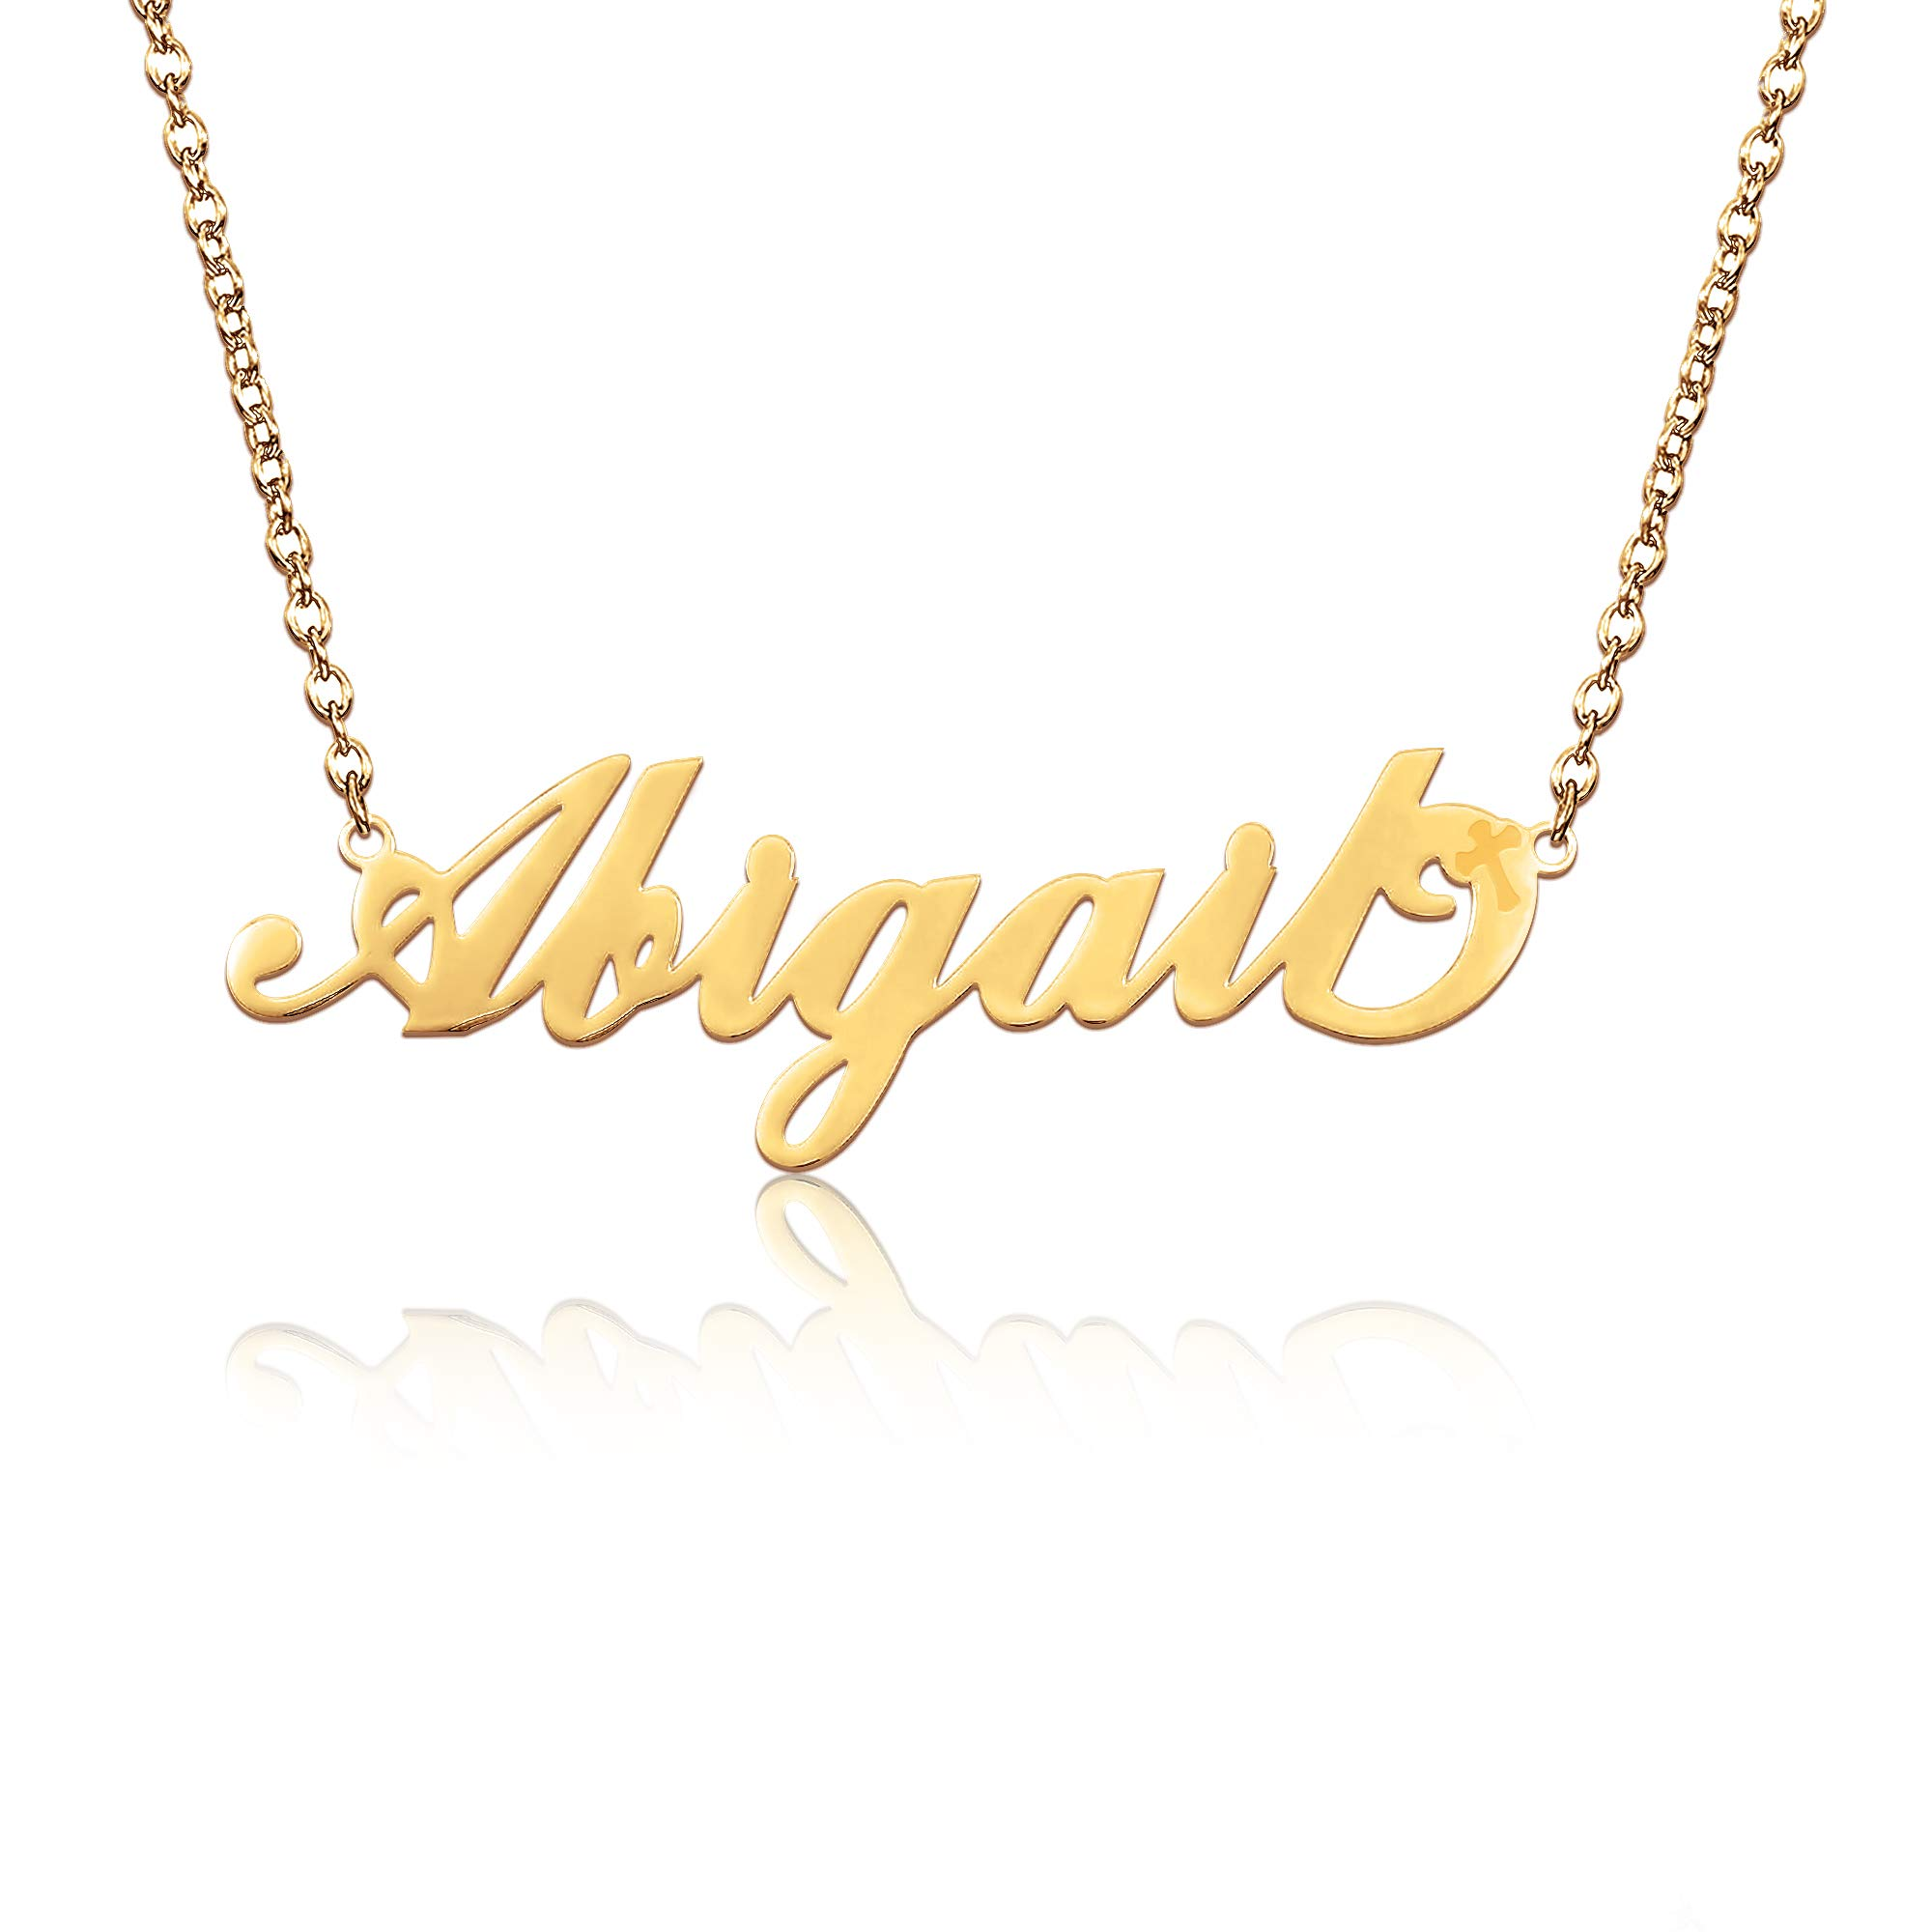 "BeautyName Name Necklace Yellow Gold Stainless with Chain 17""+2"" Extension- New Mom Bridesmaid Gift Jewelry for Women"